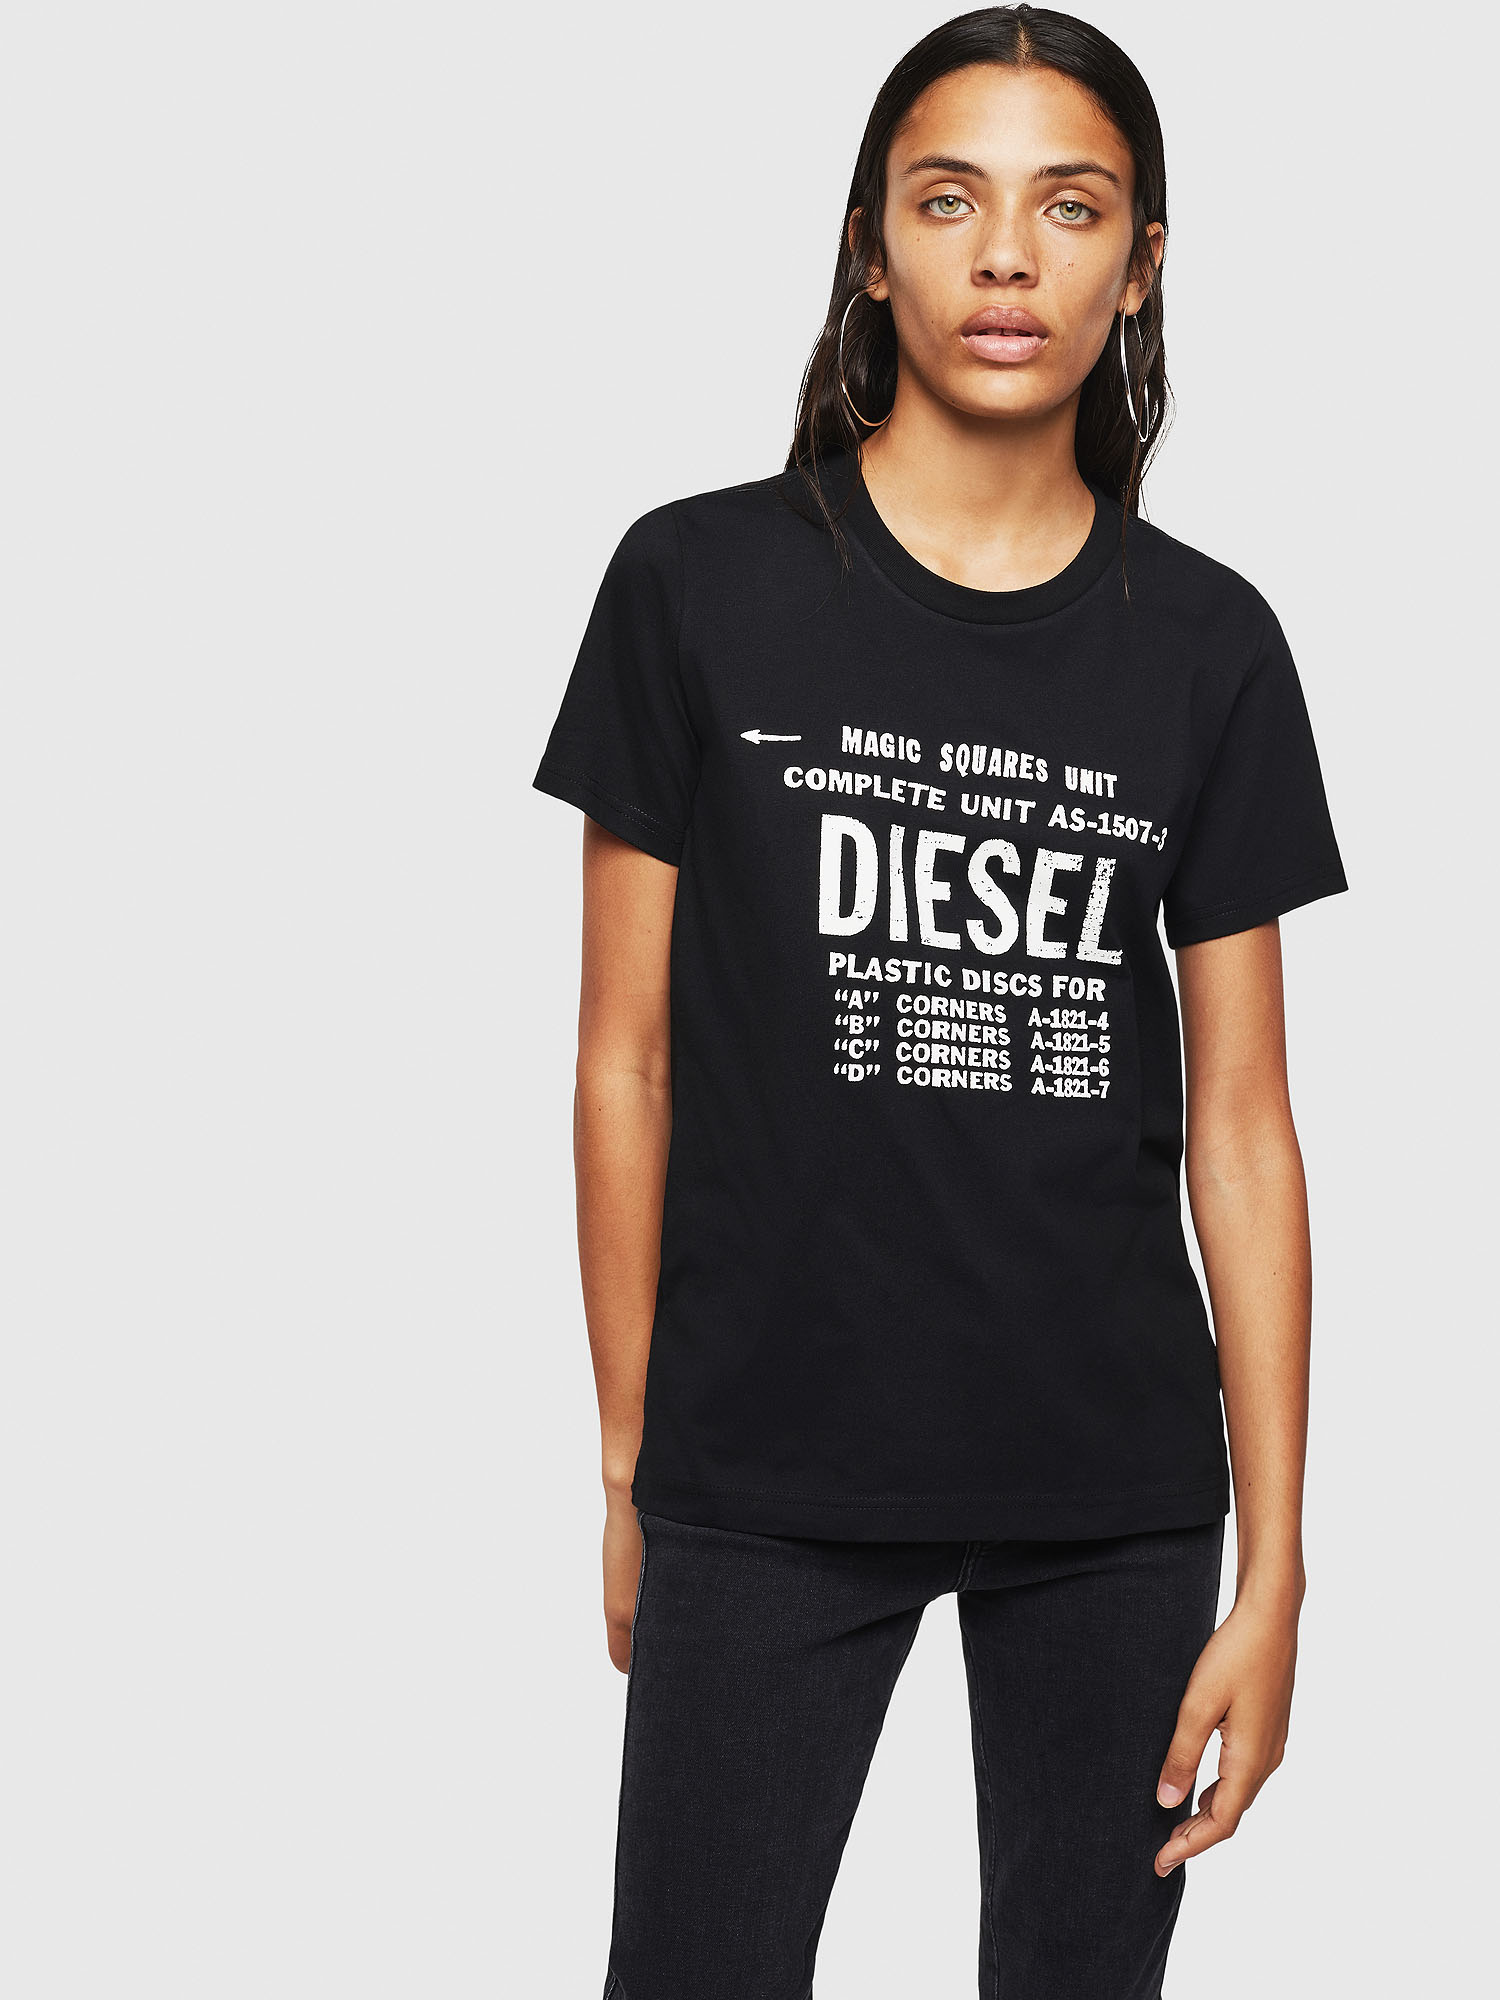 Diesel - T-SILY-ZF,  - T-Shirts - Image 1